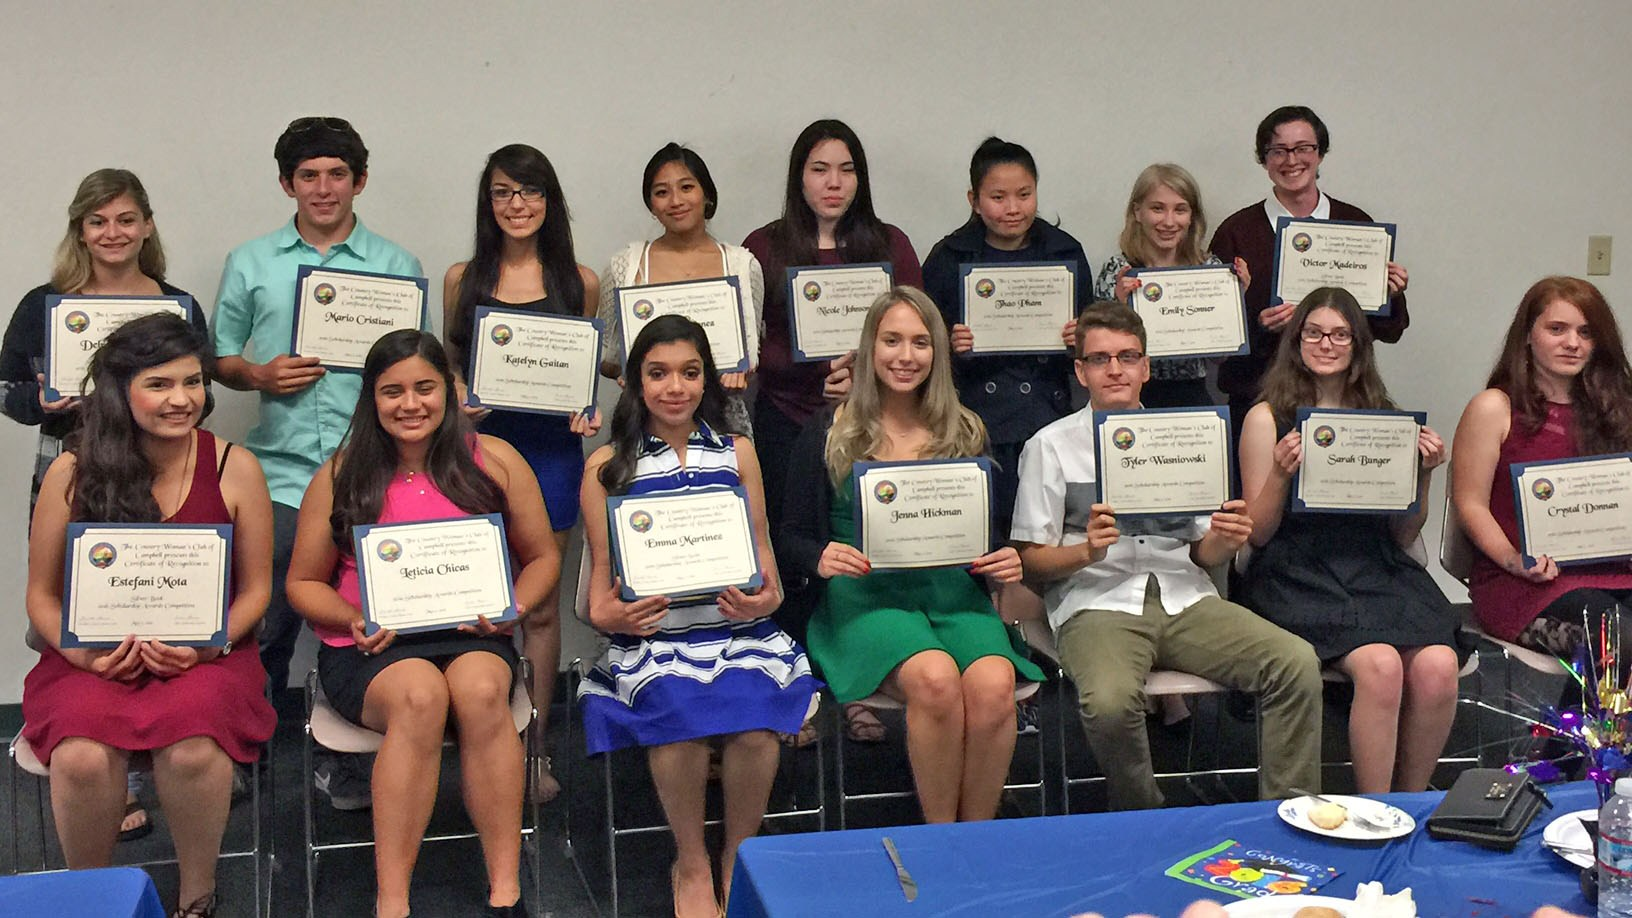 CUHSD Students Receive Almost $20,000 in Scholarships from Community Partner